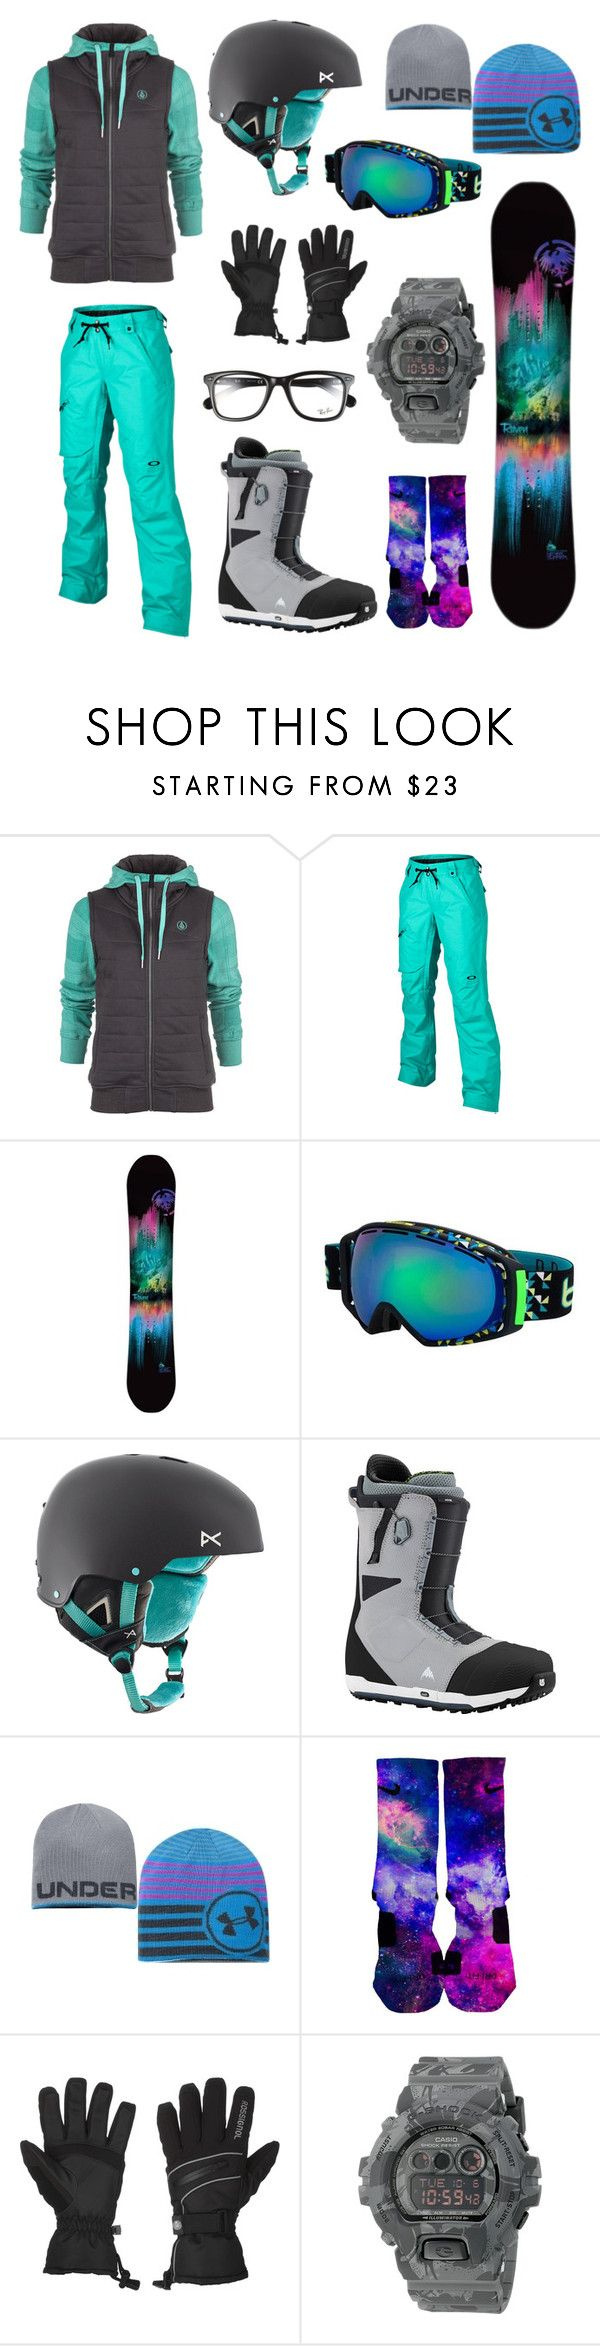 """Snowboarding"" by mj04 ❤ liked on Polyvore featuring Volcom, Oakley, Bolle, Burton, Under Armour, Rossignol, G-Shock and Ray-Ban"